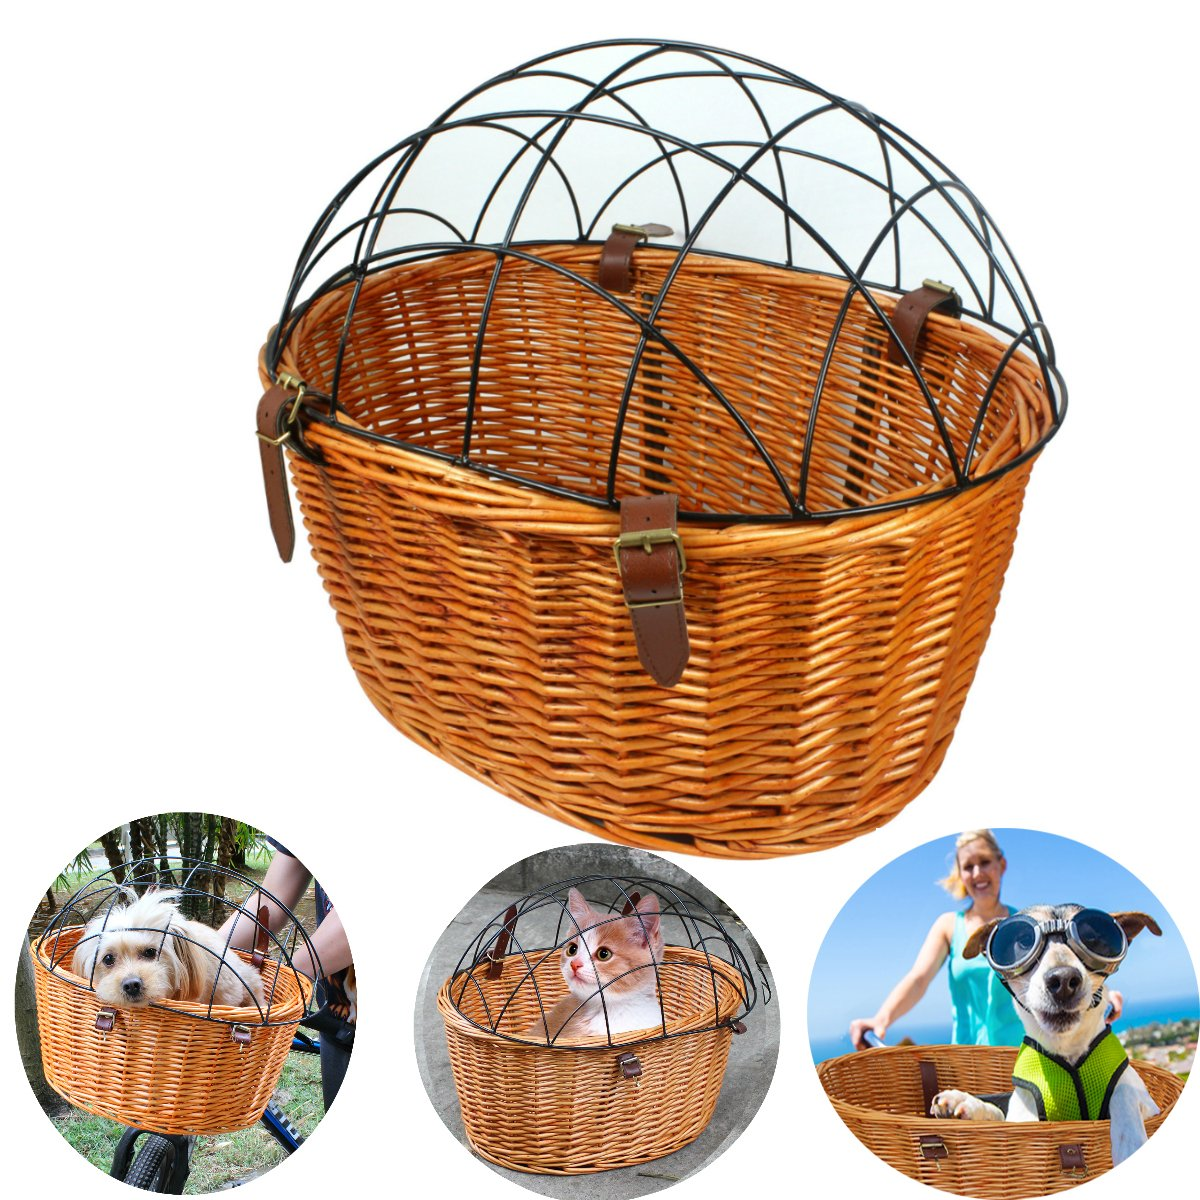 AORYVIC Rural Style Wicker Basket Bicycle Front Pet Cat Dog Carrier Cage Ecological Willow Cage Hanging Basket Capacity 20lbs